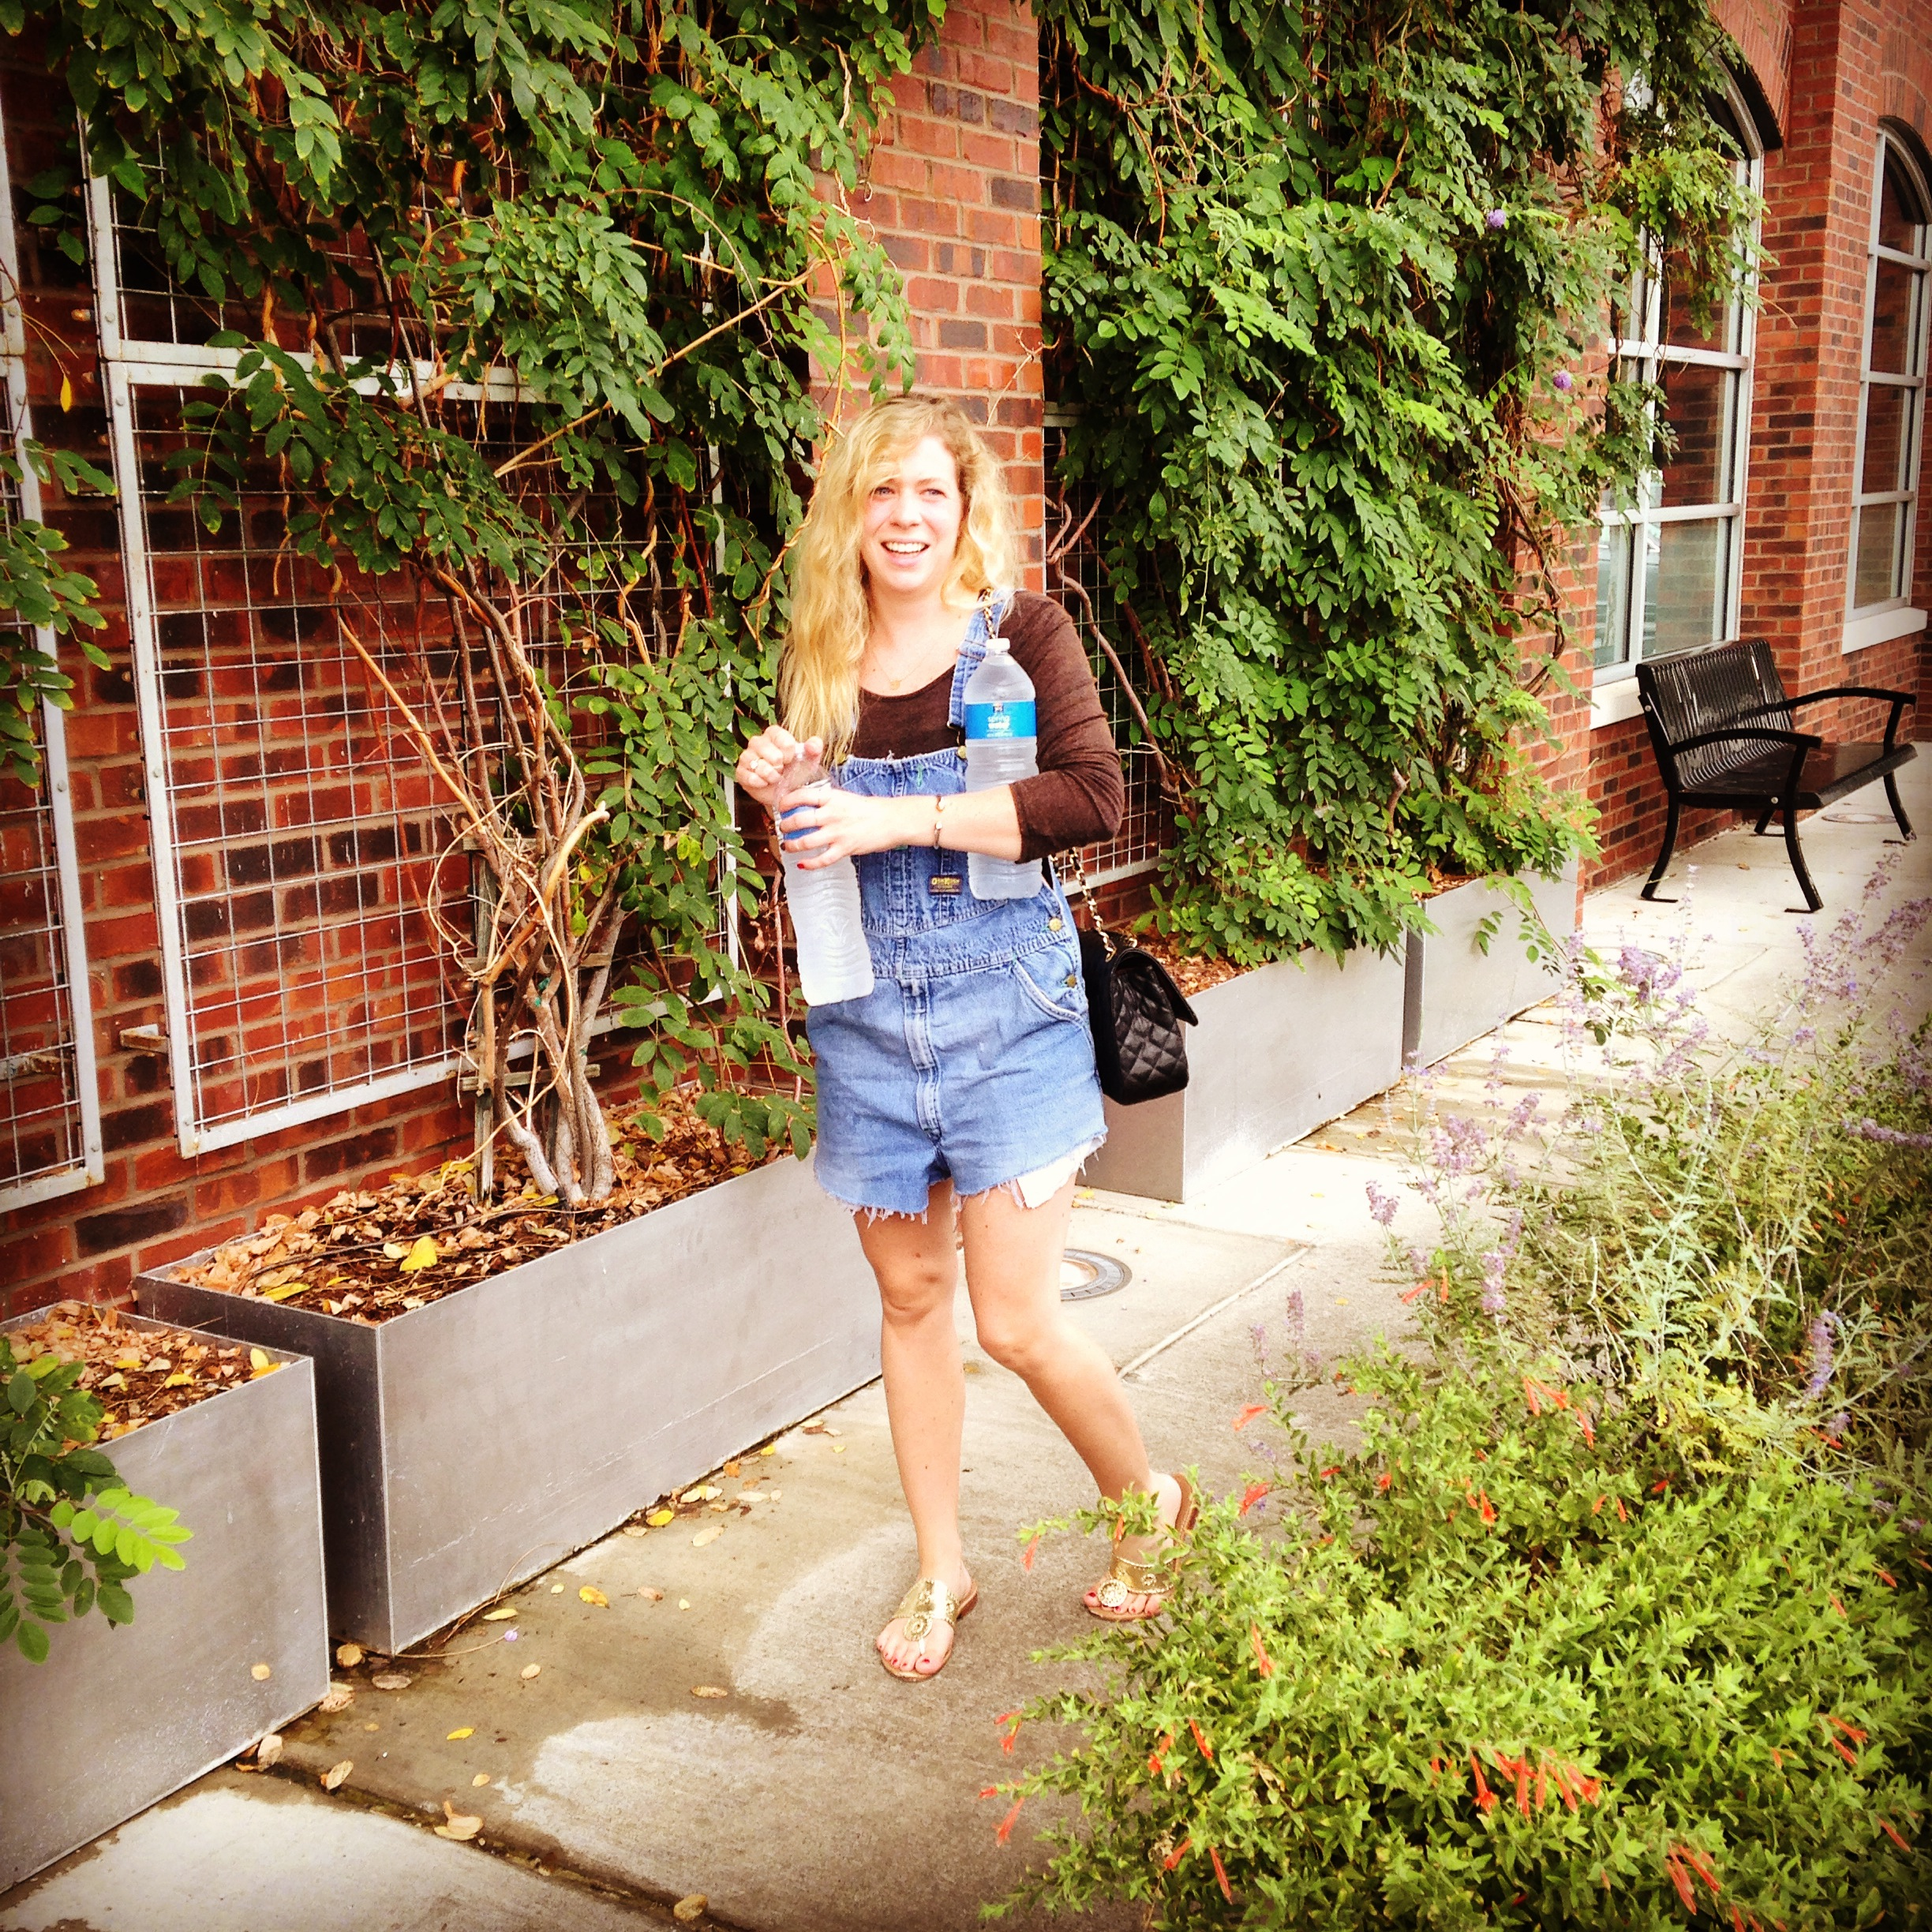 Trying to revive myself at Whole Foods with two extreme bottles of water. Wearing my grandfather's overalls and an Urban Outfitters long sleeve crop (and looking less than fabulous).